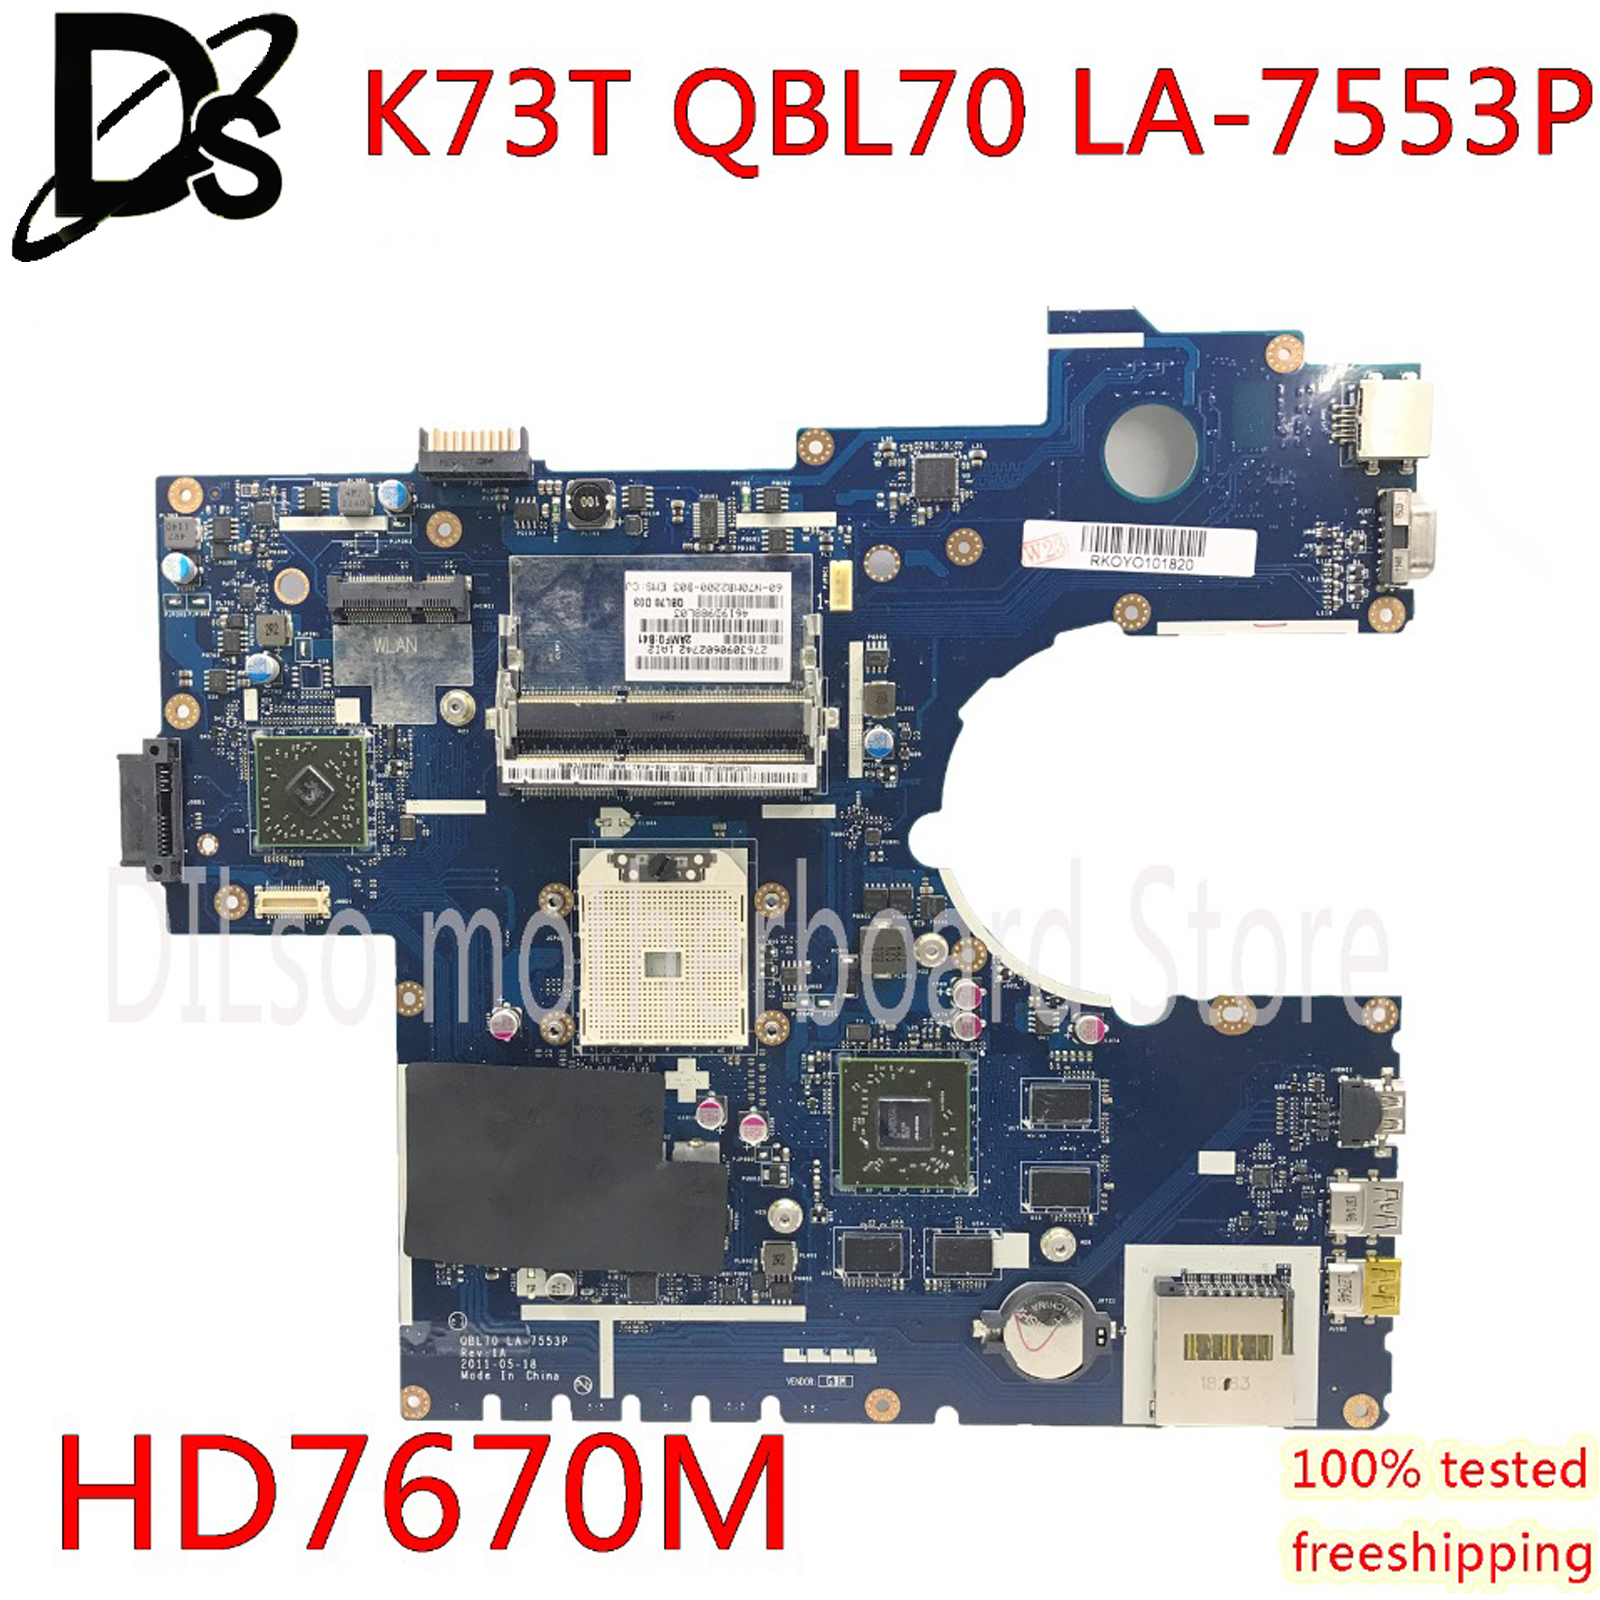 KEFU LA-7553P motherboard For ASUS K73T K73TK K73TA X73T K73 aptop motherboard with <font><b>HD</b></font> <font><b>7670M</b></font> ORIGINAL 100% work tested image